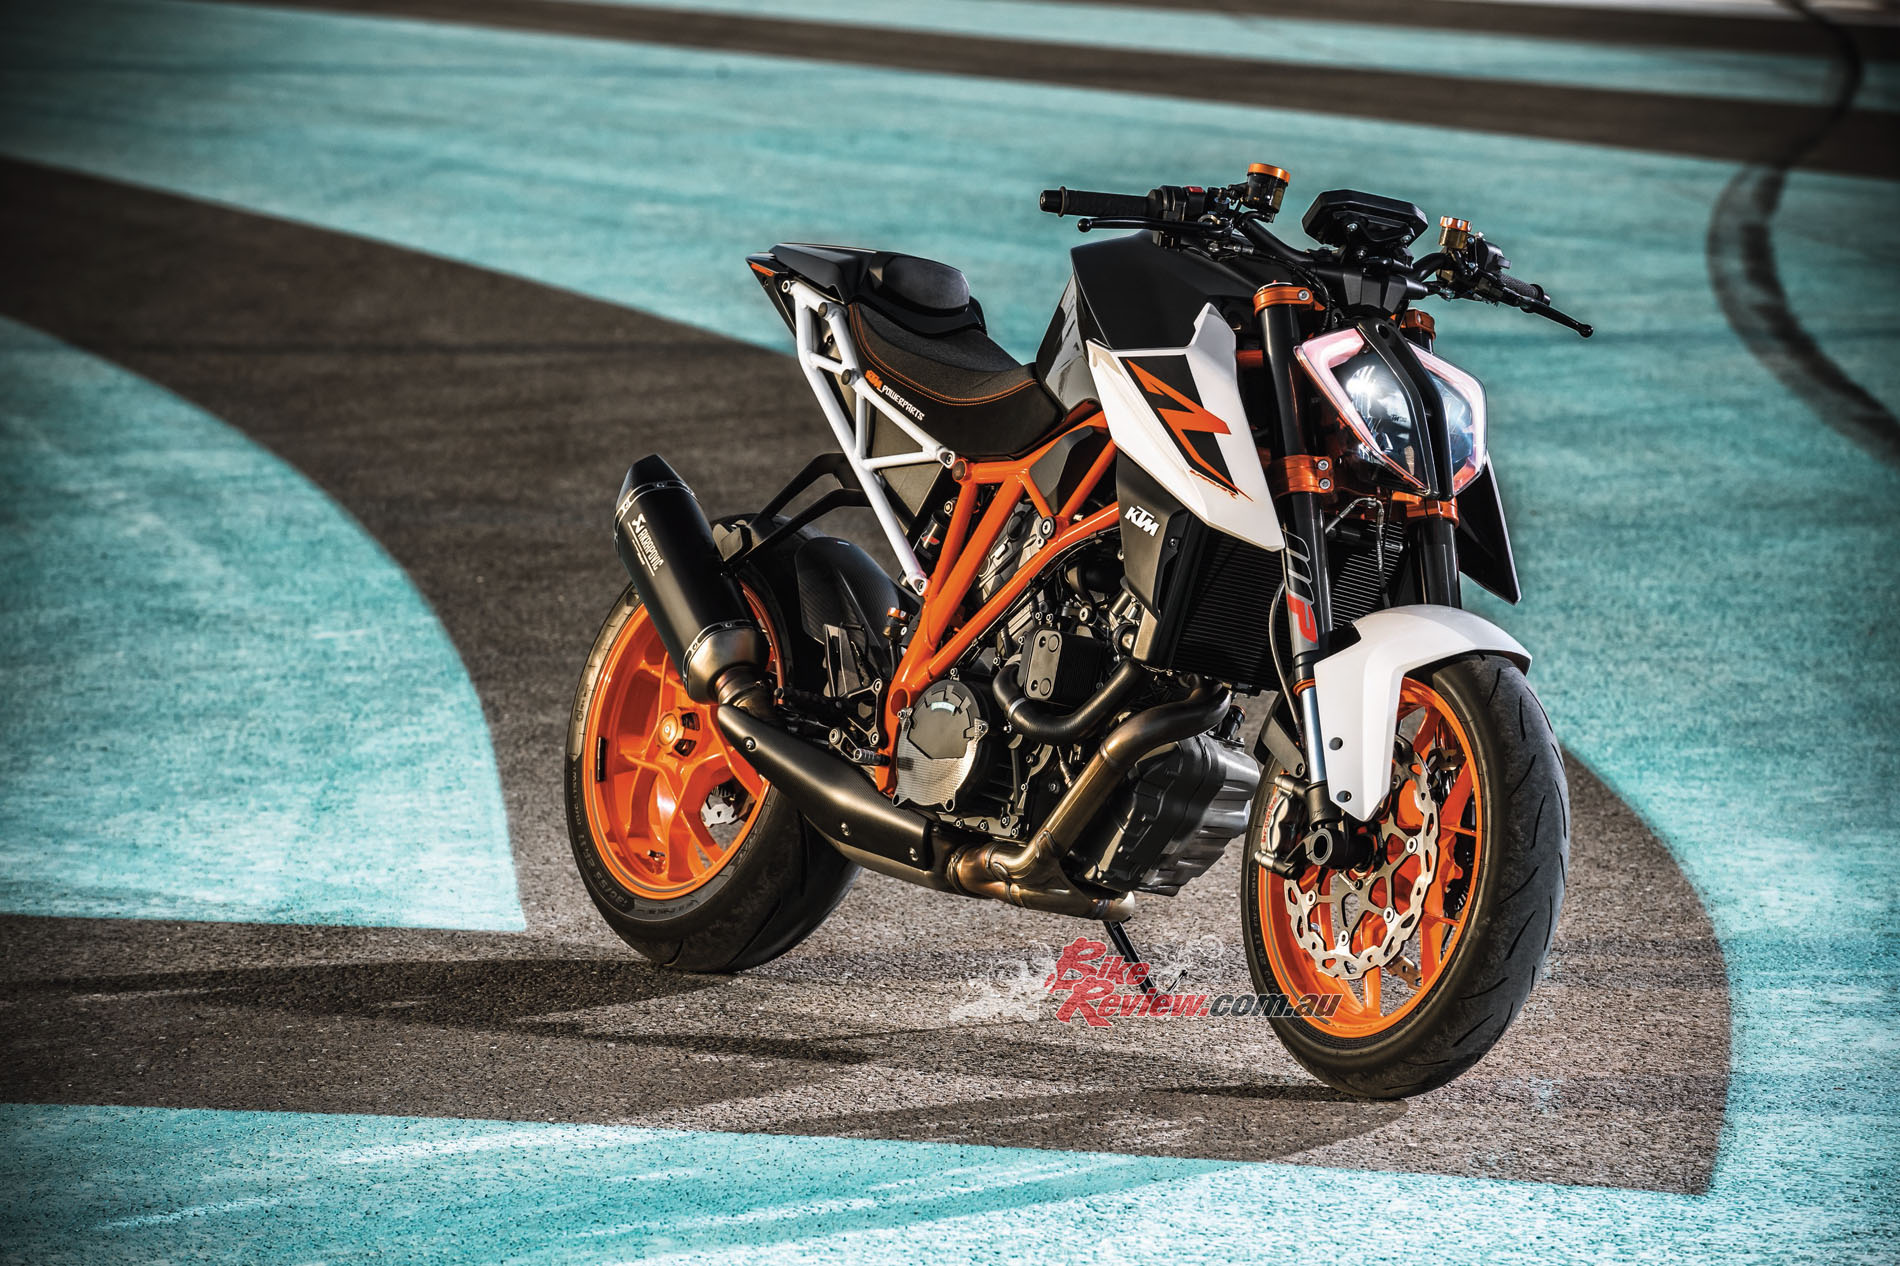 All new styling for 2017, along with a heavily revised engine and electronics package, makes the Super Duke 1290 R an incredible motorcycle. If you are a red blooded performance fan you need to try one!